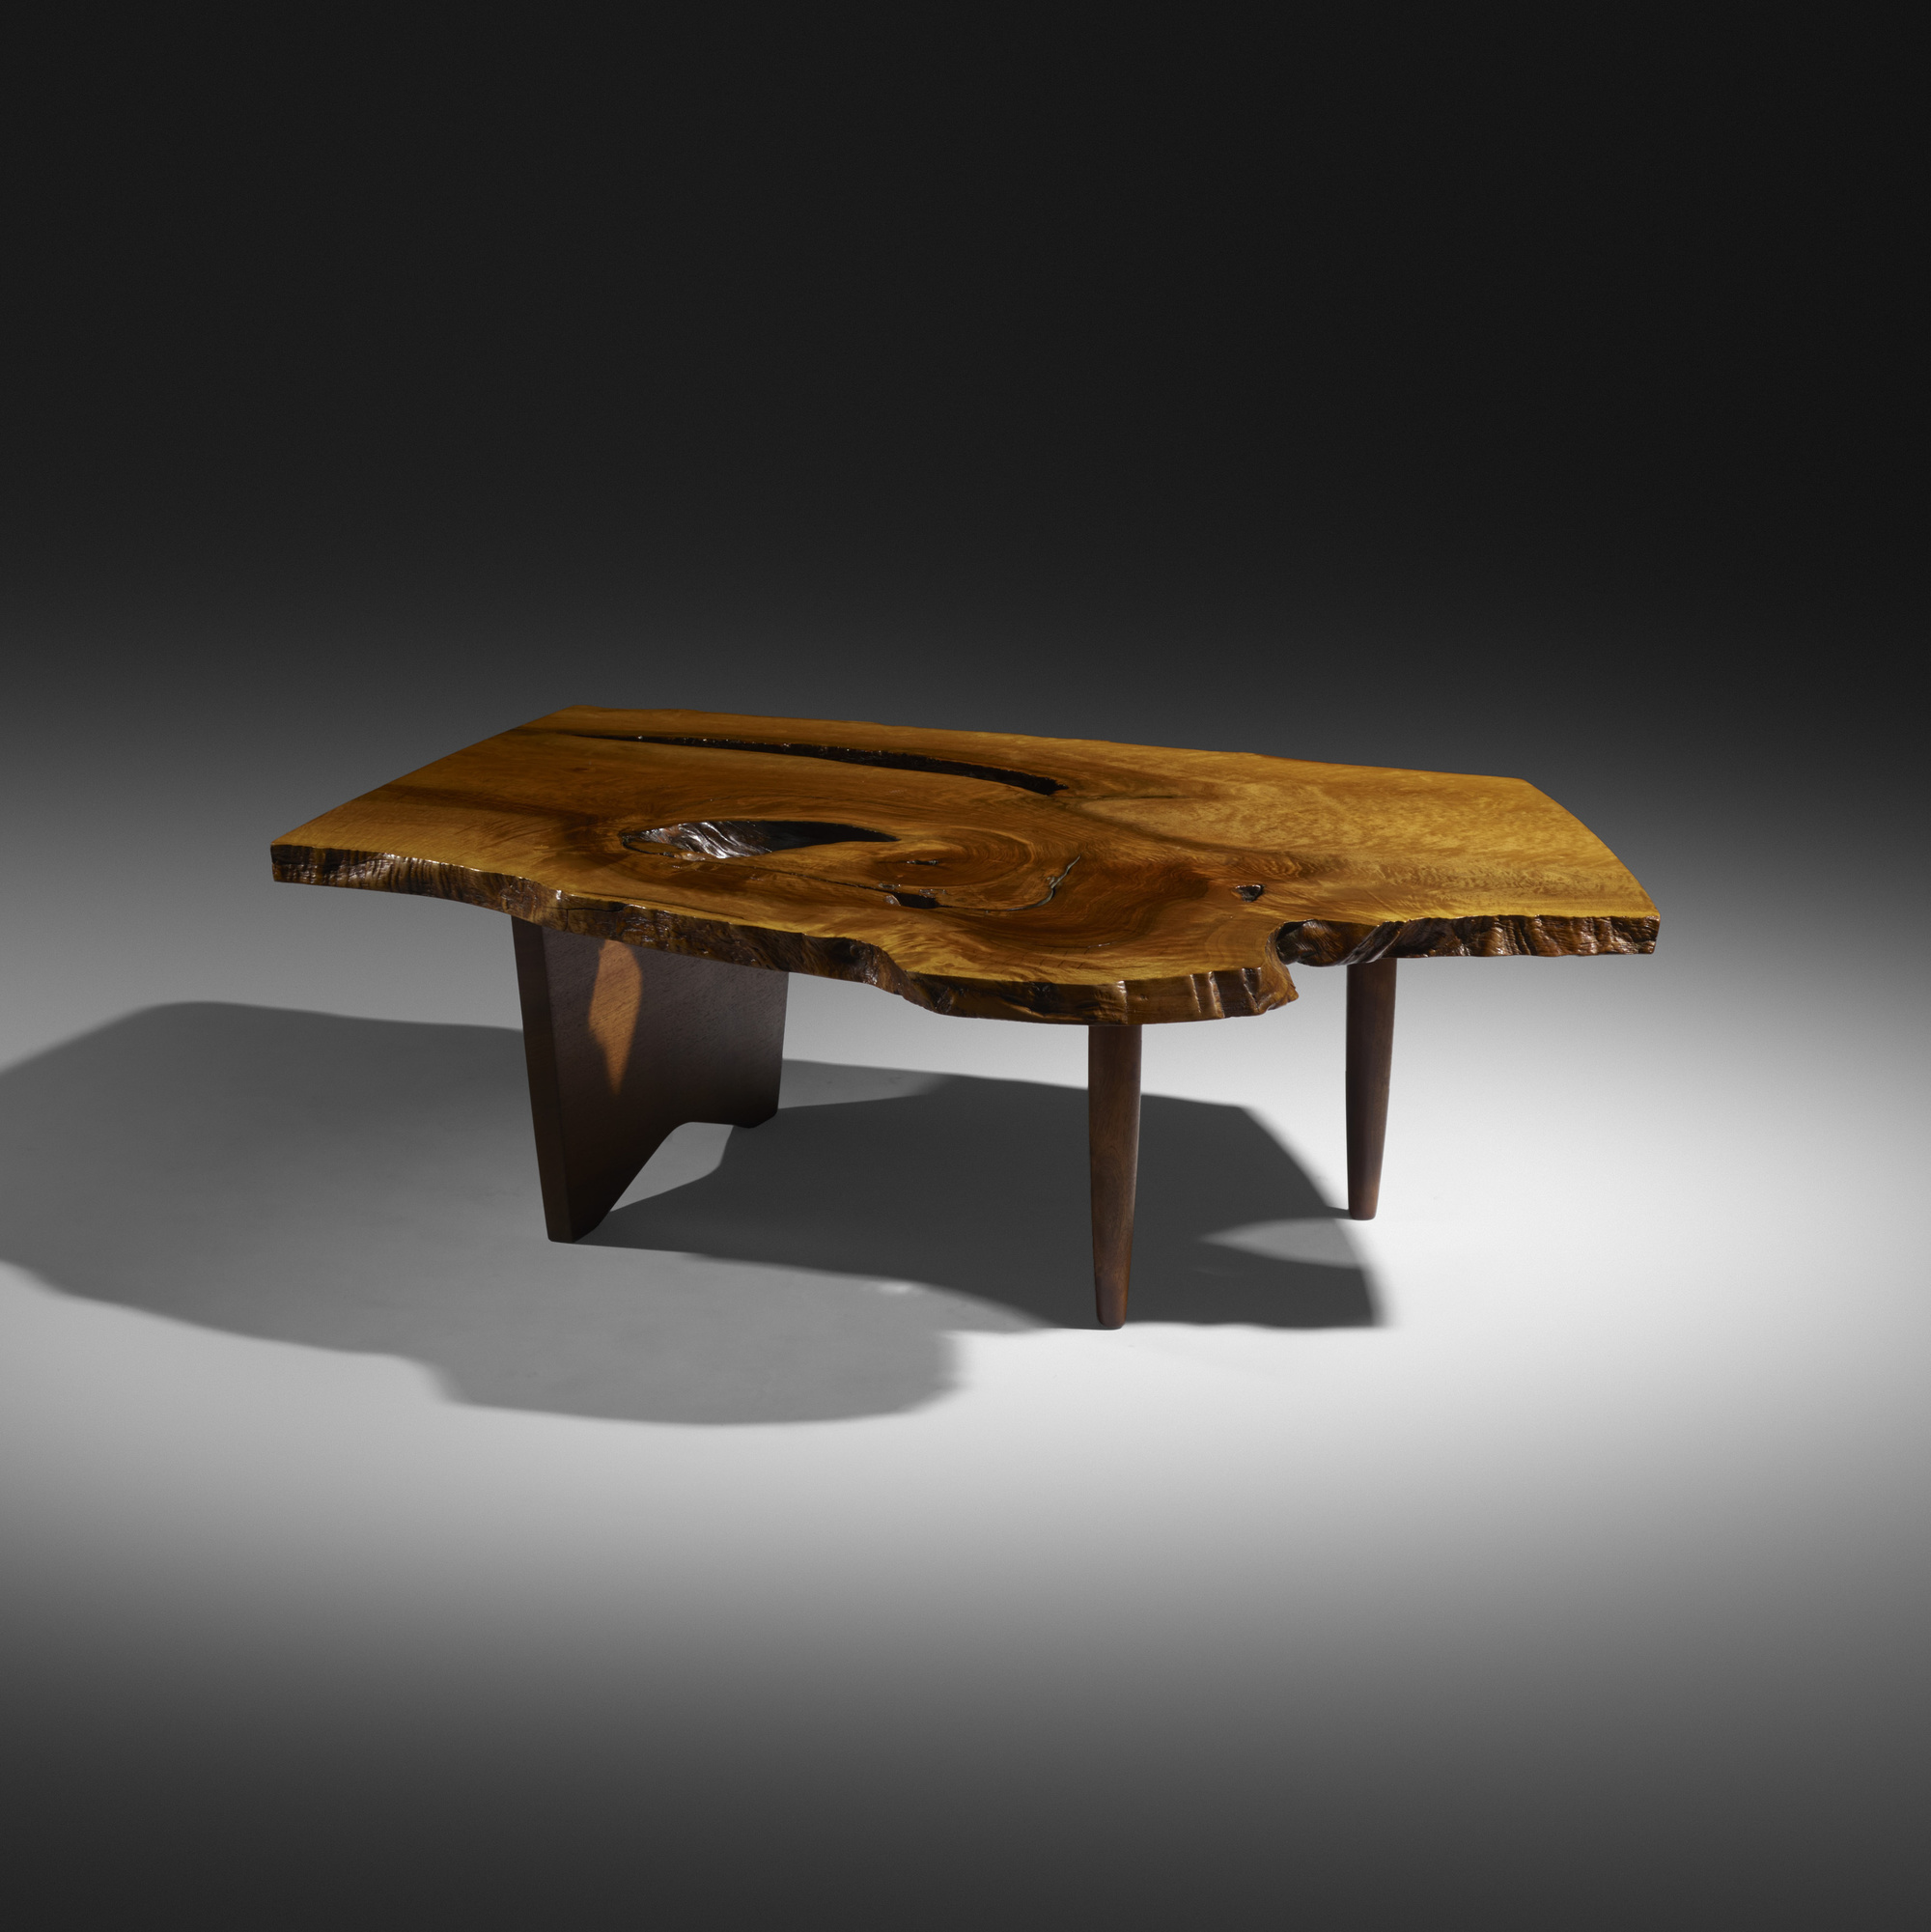 128: George Nakashima / Slab coffee table (1 of 2)